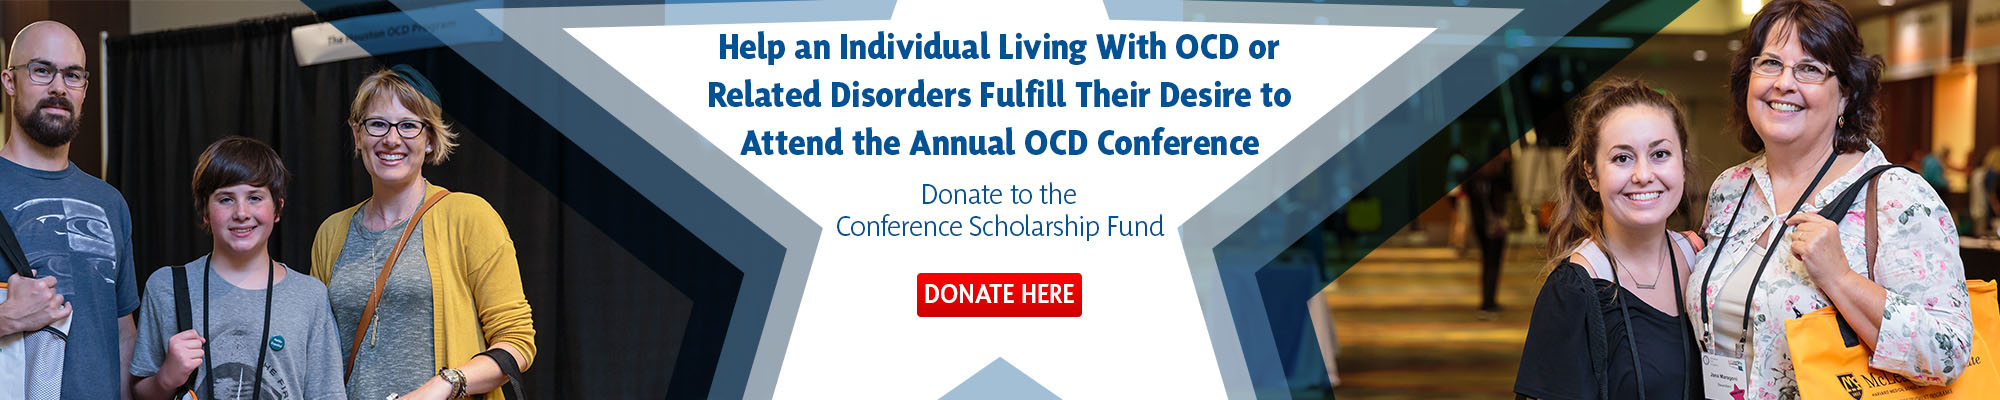 Donate to the Annual OCD Conference Scholarship Fund